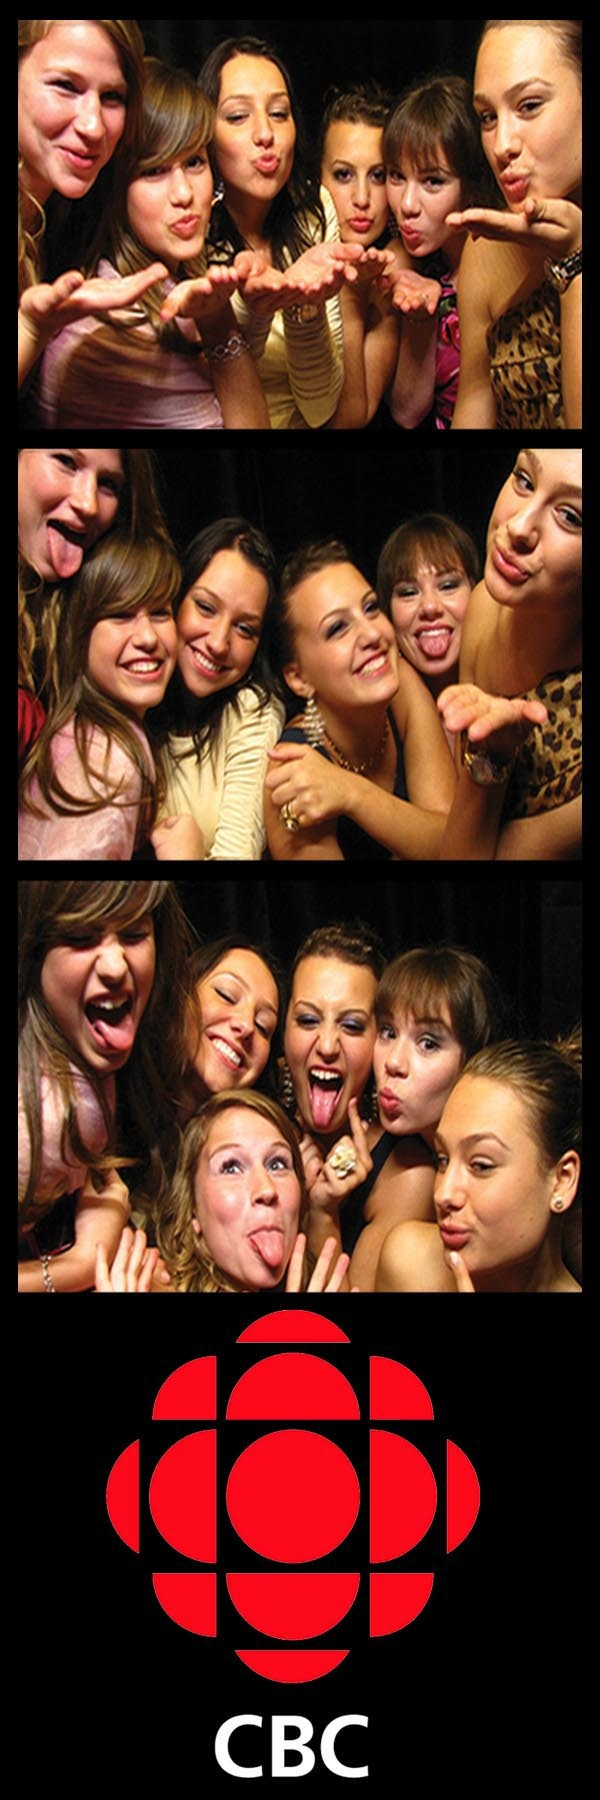 2x6 photostrip layout with 3 photos. #evententertainment #spiceupyourworkevent #kisses